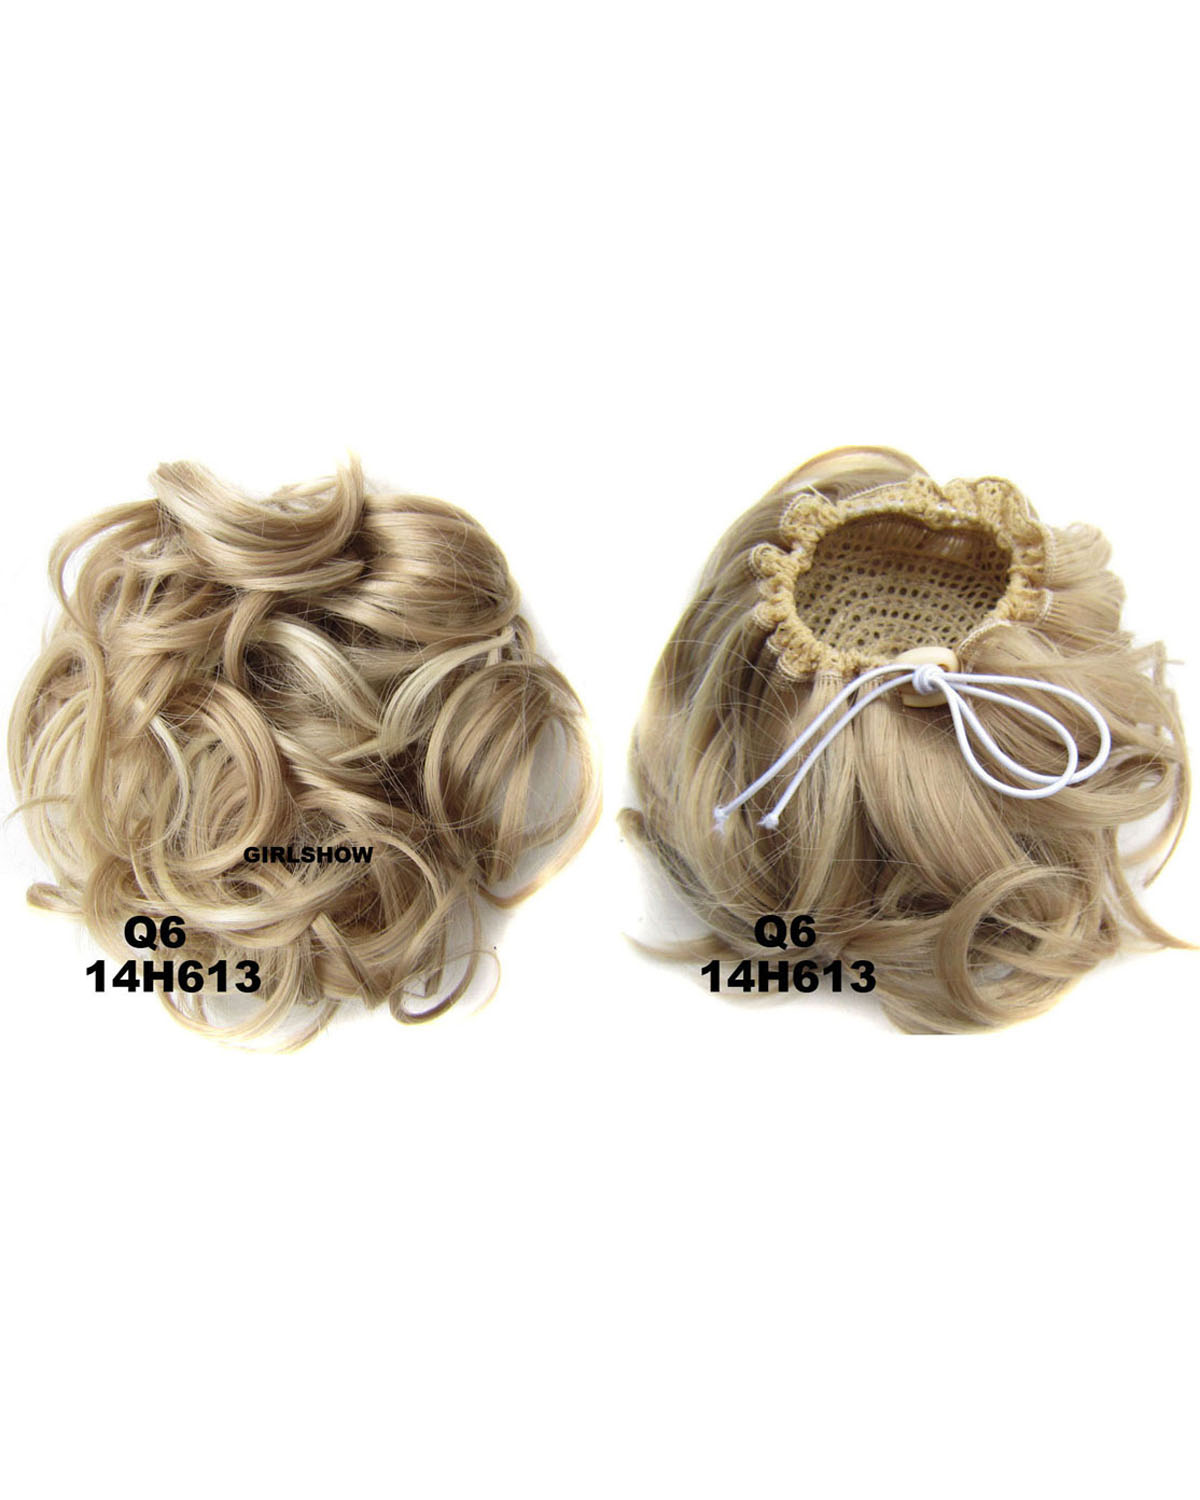 Ladies Newly and Great Quality Curly and Short Hair Buns Drawstring Synthetic Hair Extension Bride Scrunchies 14H613